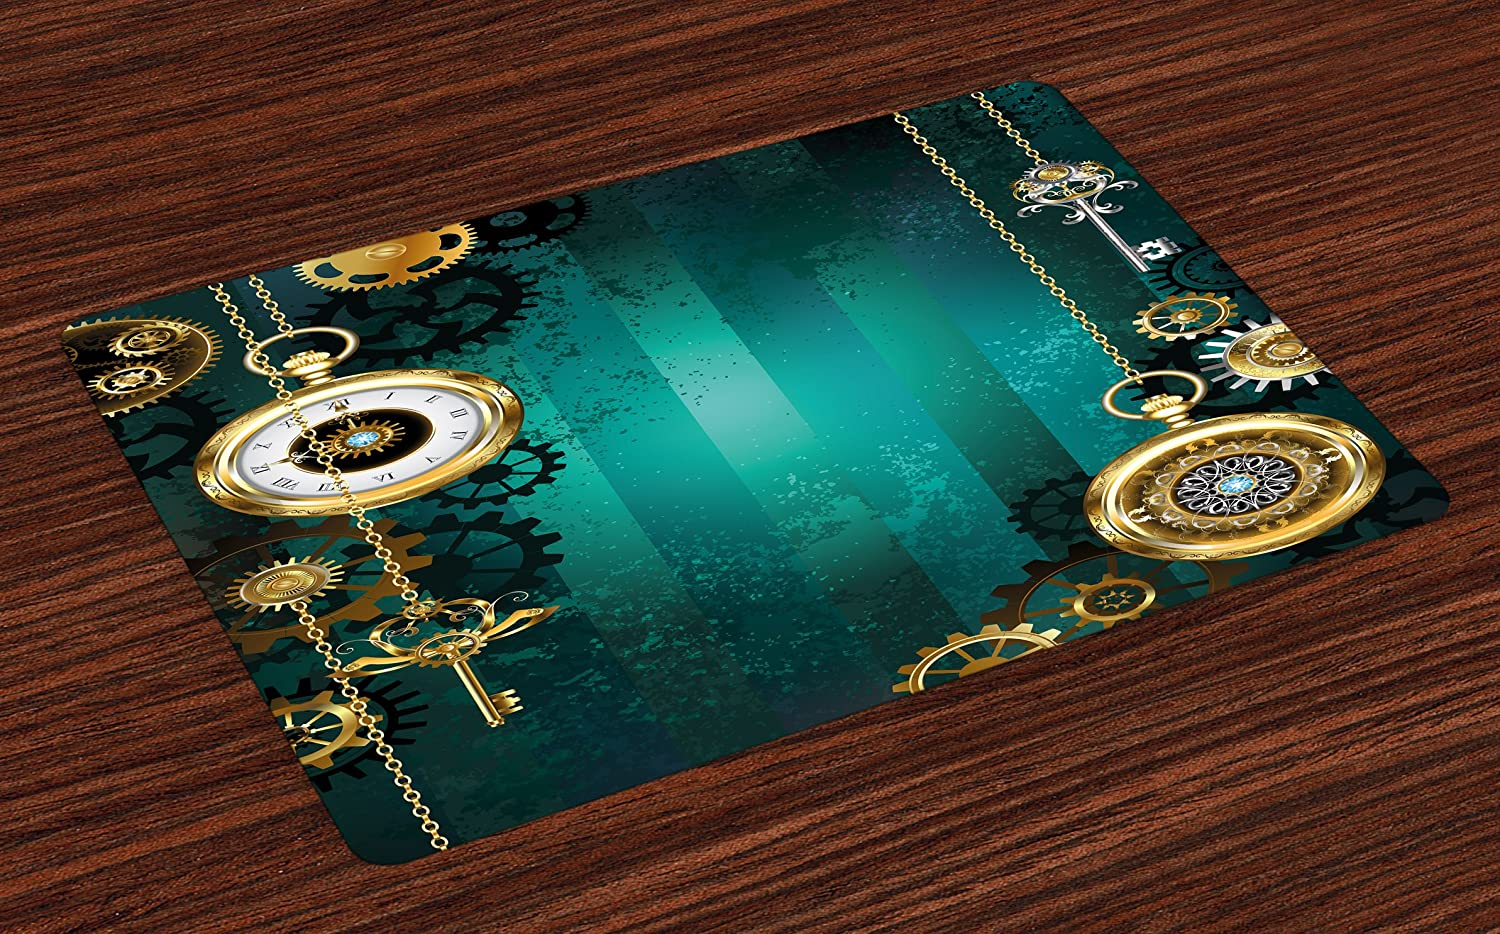 Ambesonne Industrial Place Mats Set of 4, Antique Items Watches Keys and Chains with Steampunk Influences Illustration, Washable Fabric Placemats for Dining Table, Standard Size, Green Gold